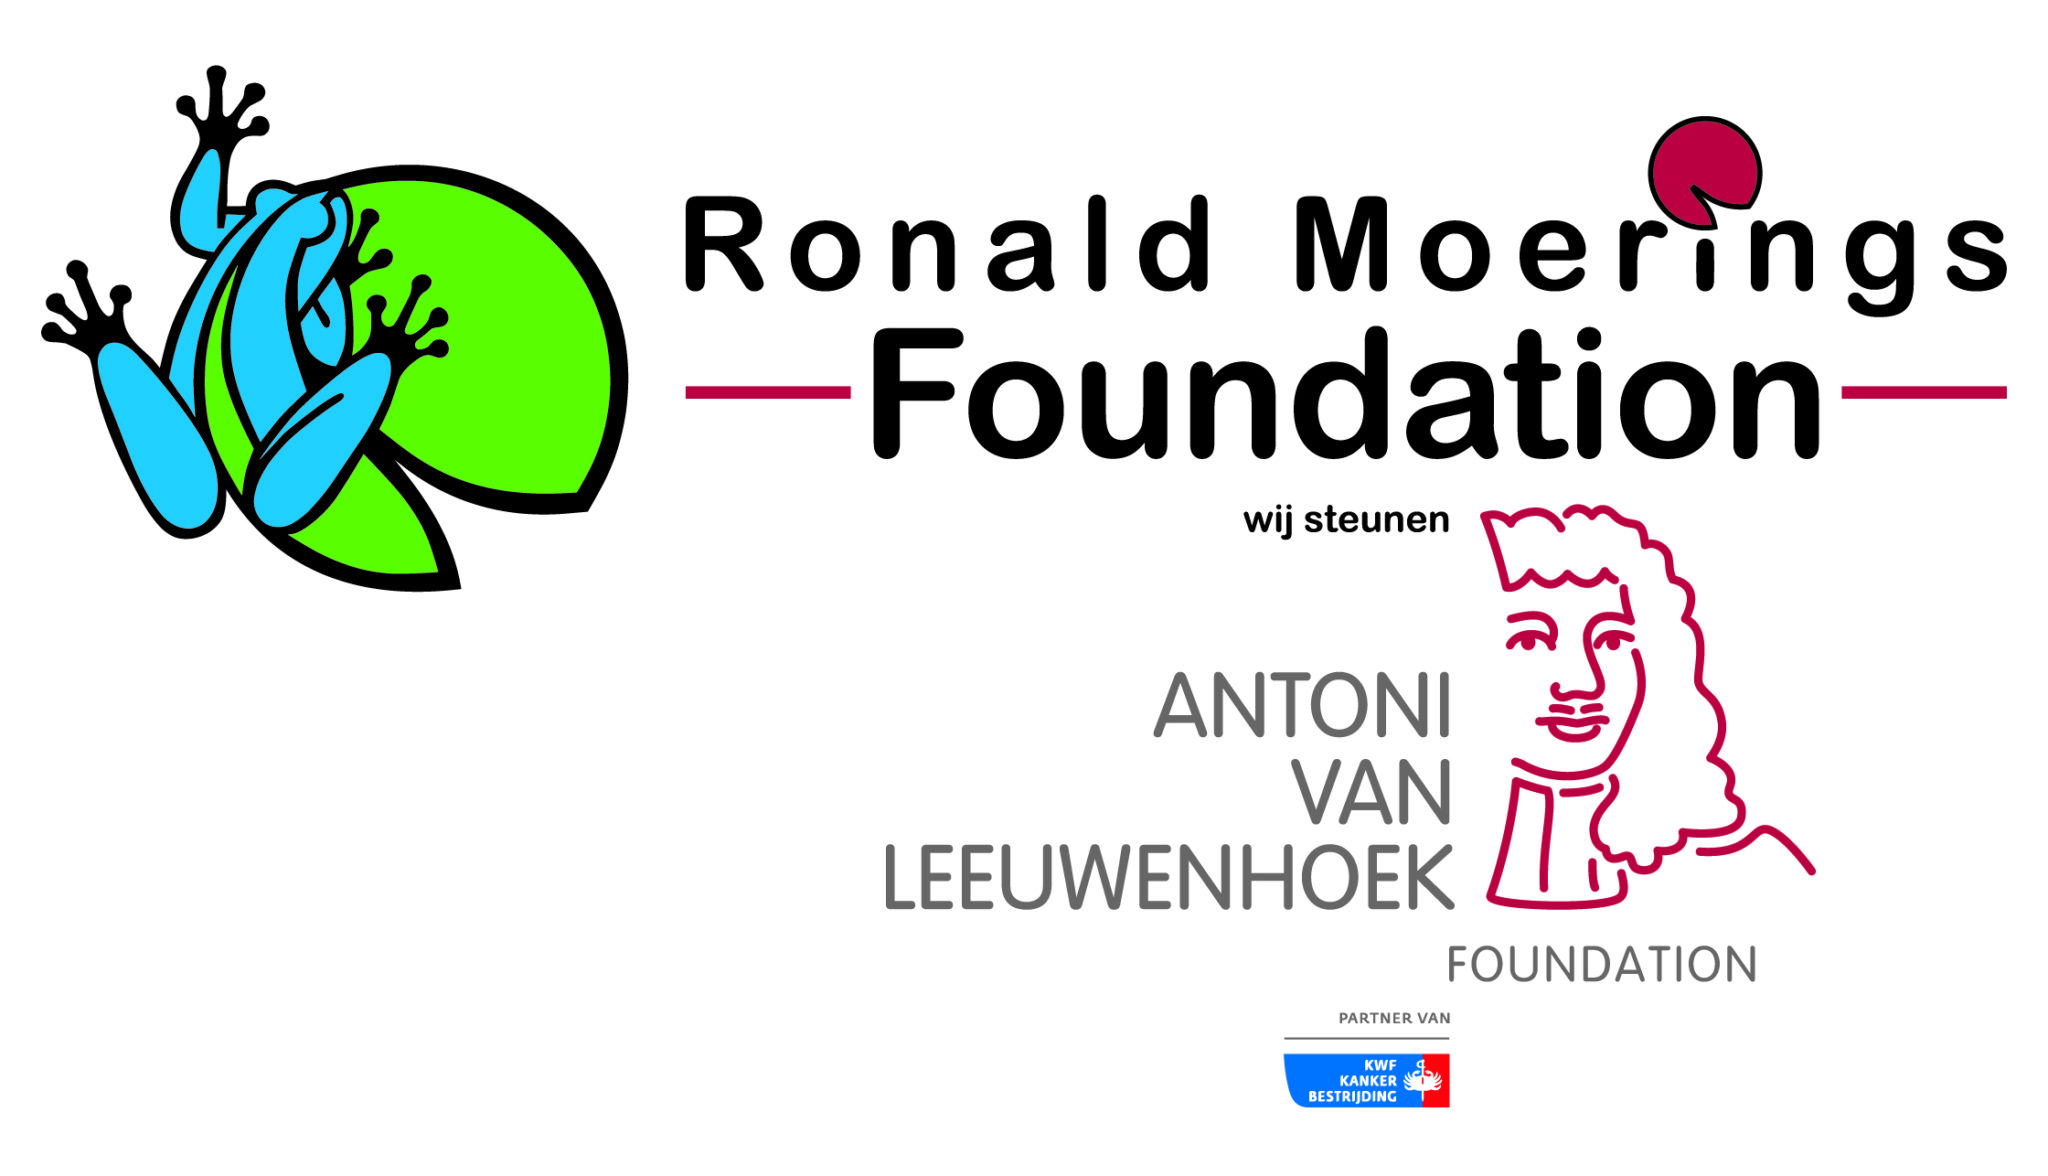 170609-logo Ronald Moerings Foundation -DEF-01-CMYK